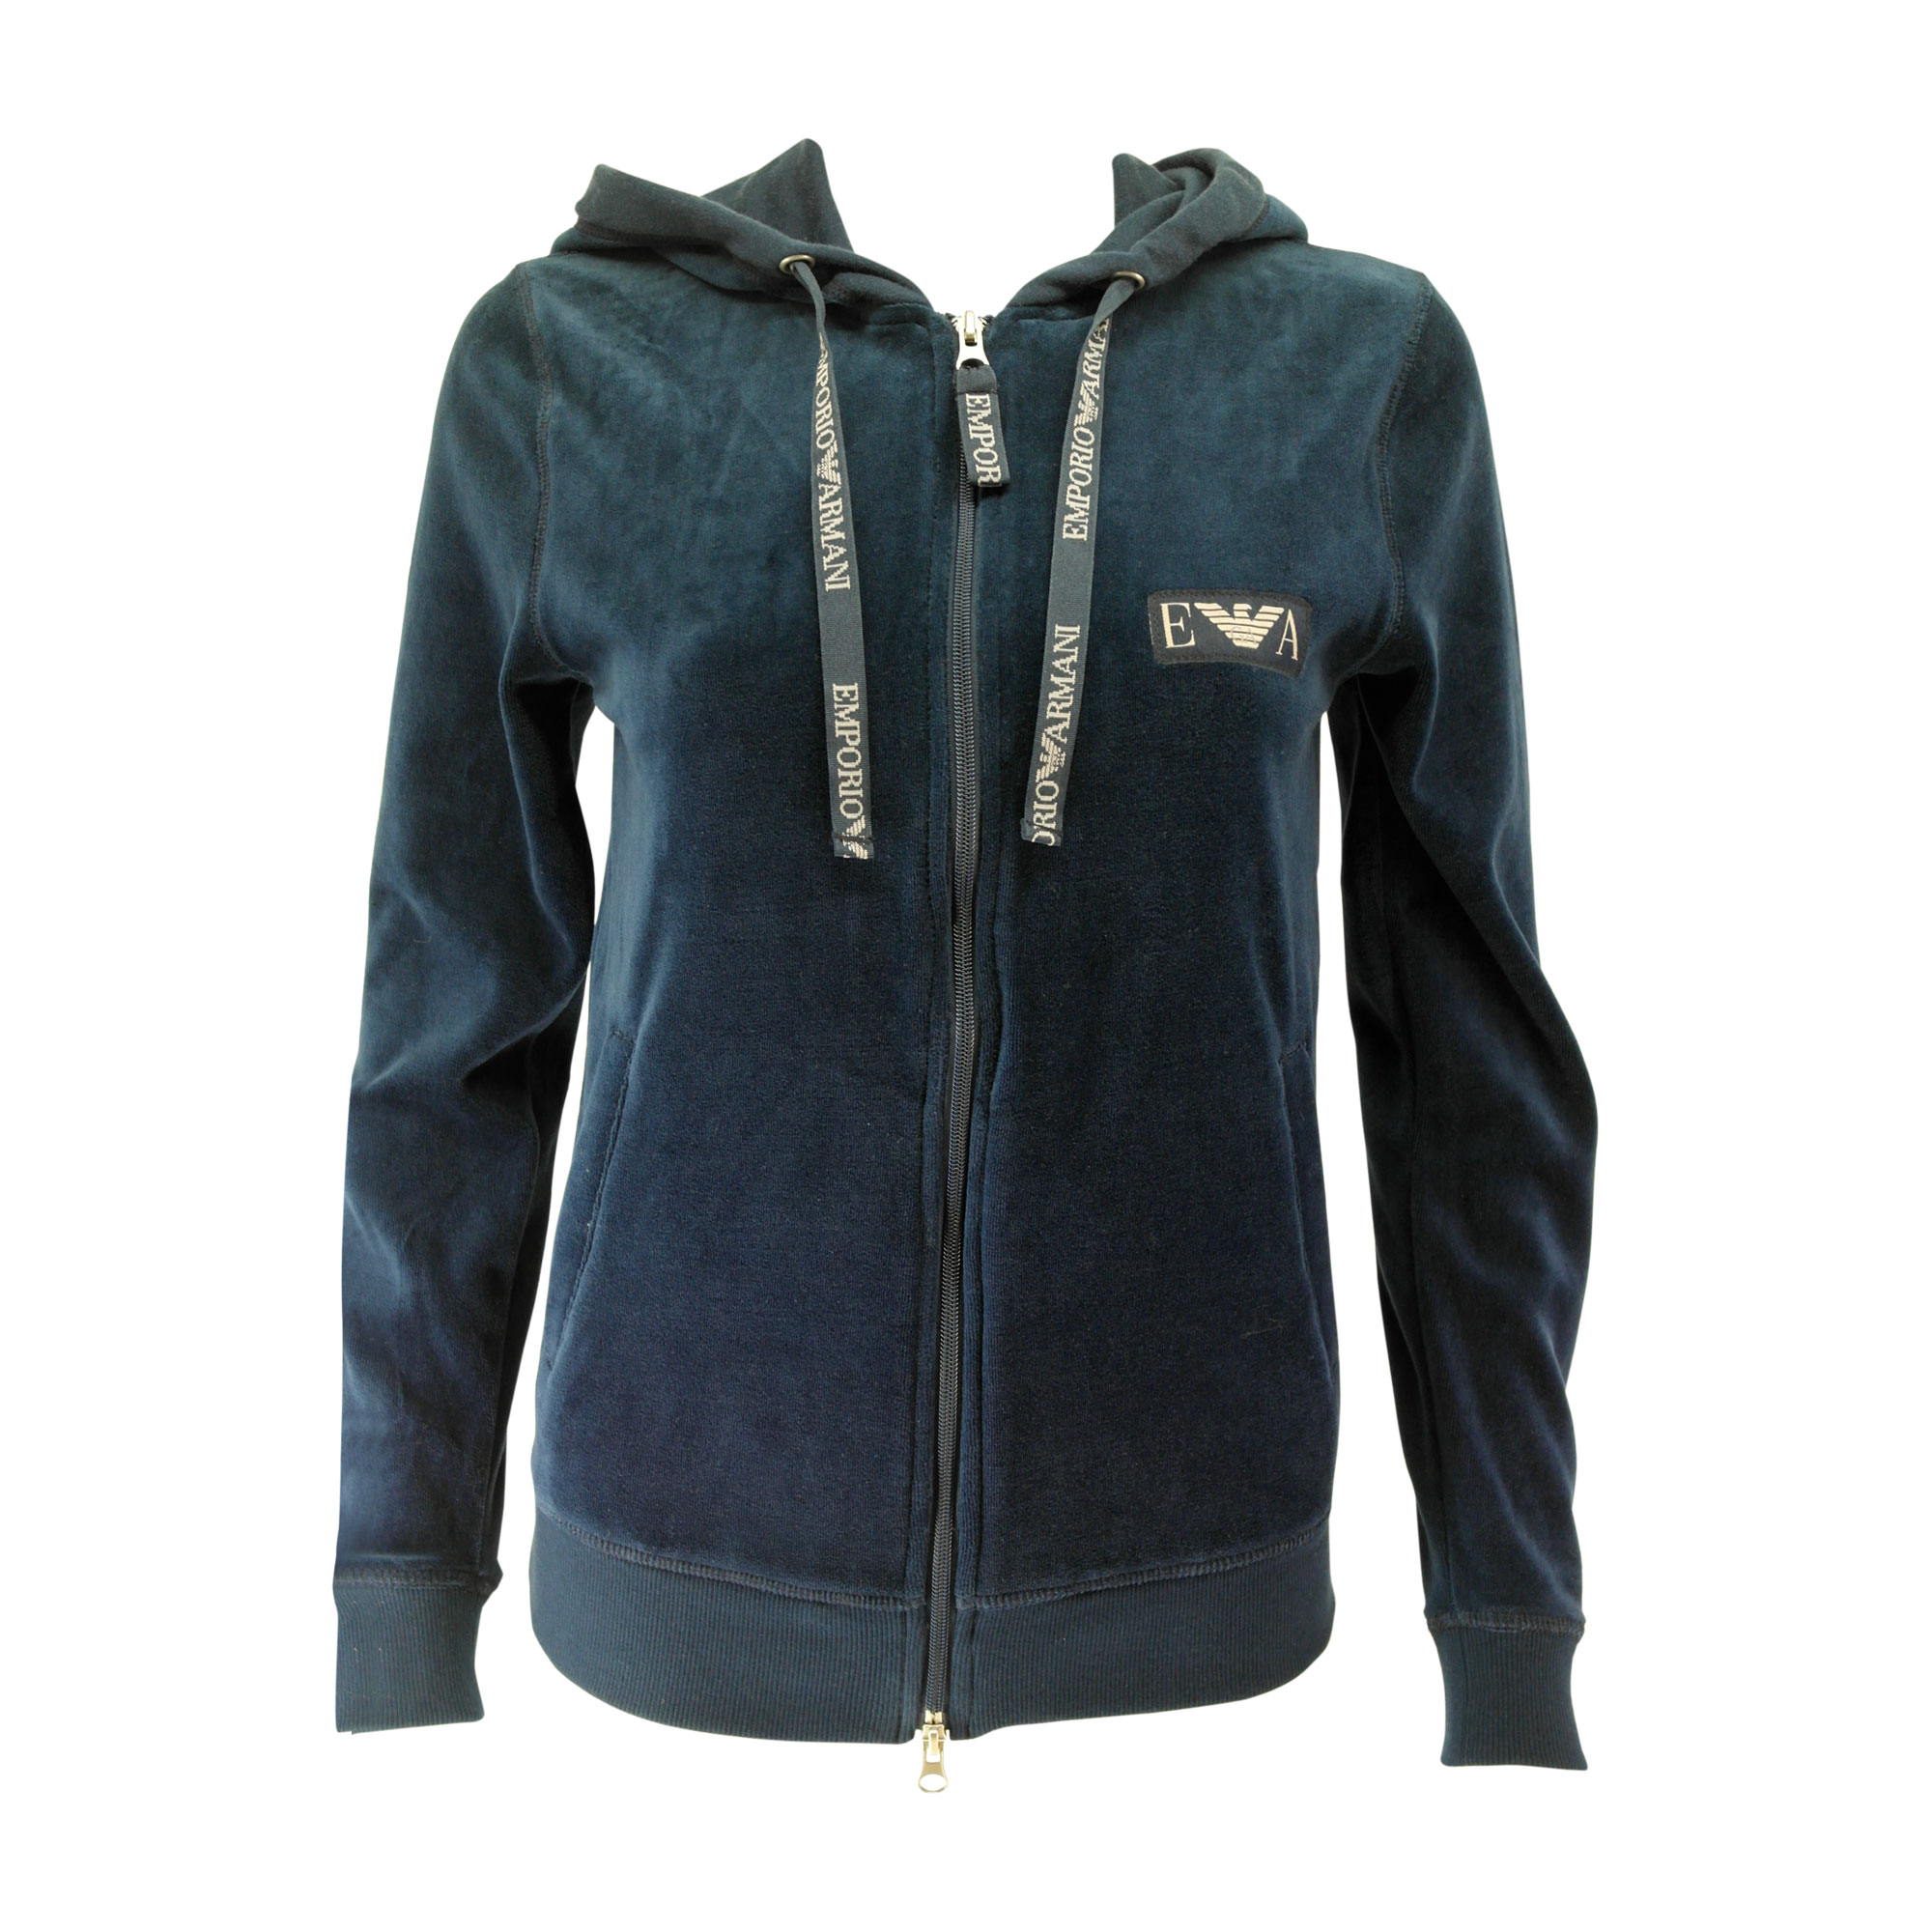 Tracksuit Top ARMANI EA7 Blue, navy, turquoise